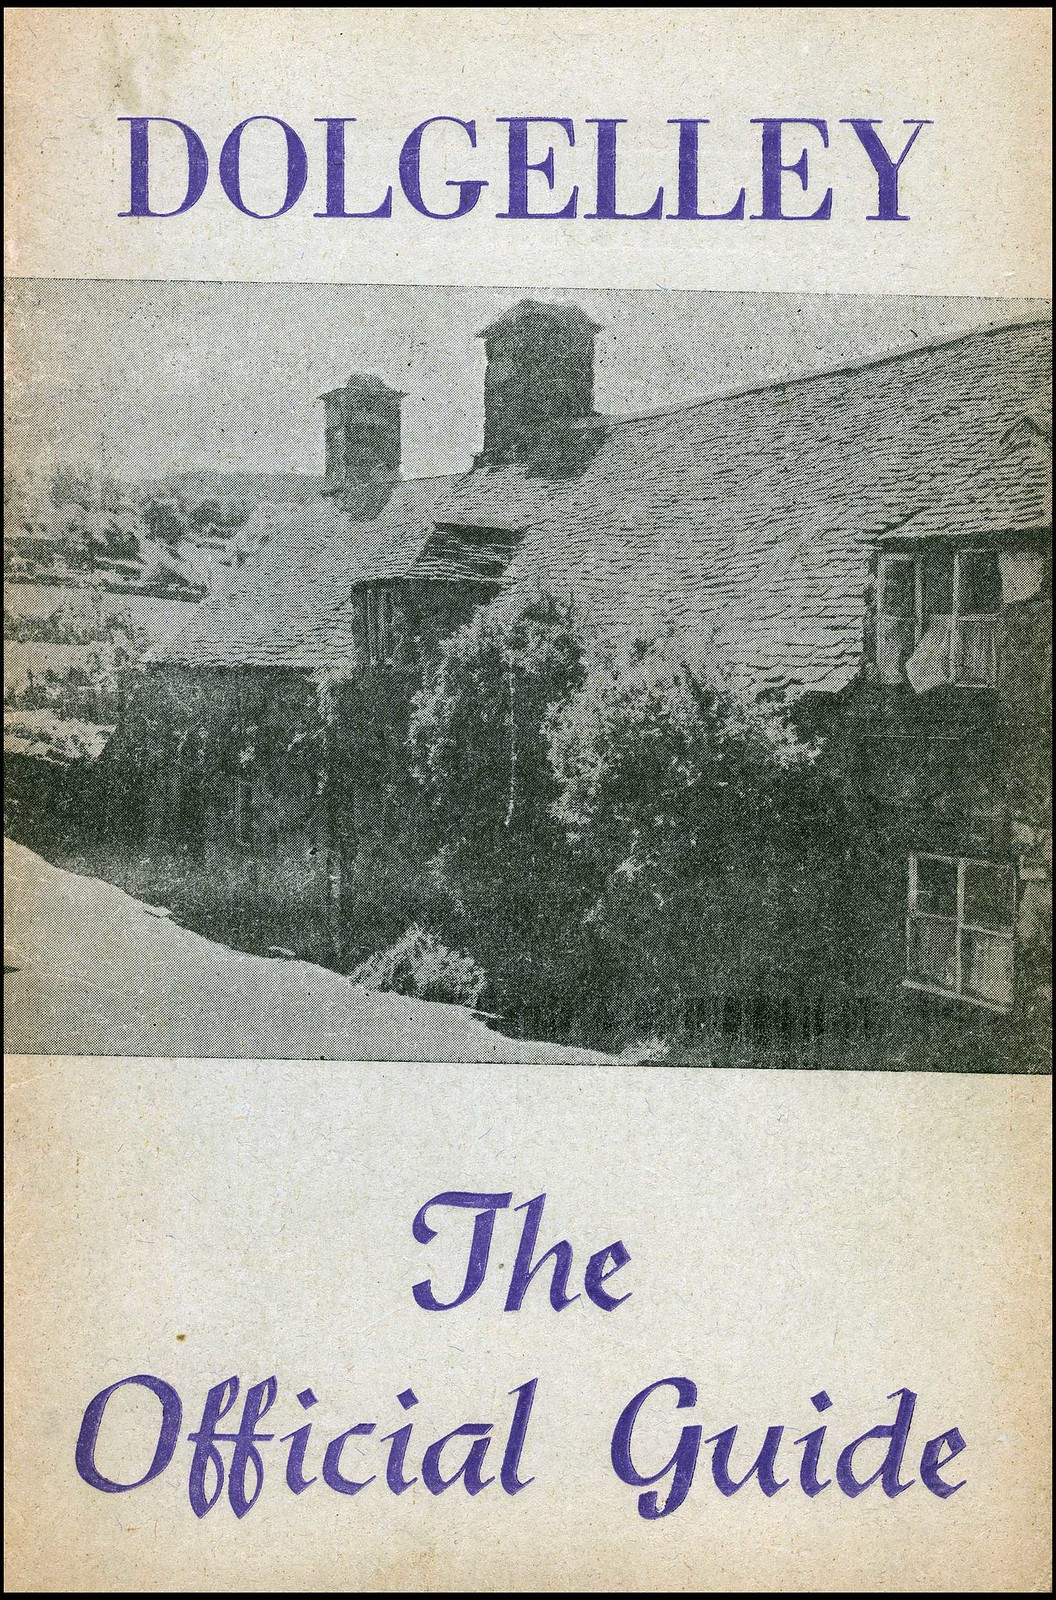 The Official Dolgelley Guide fom 1949